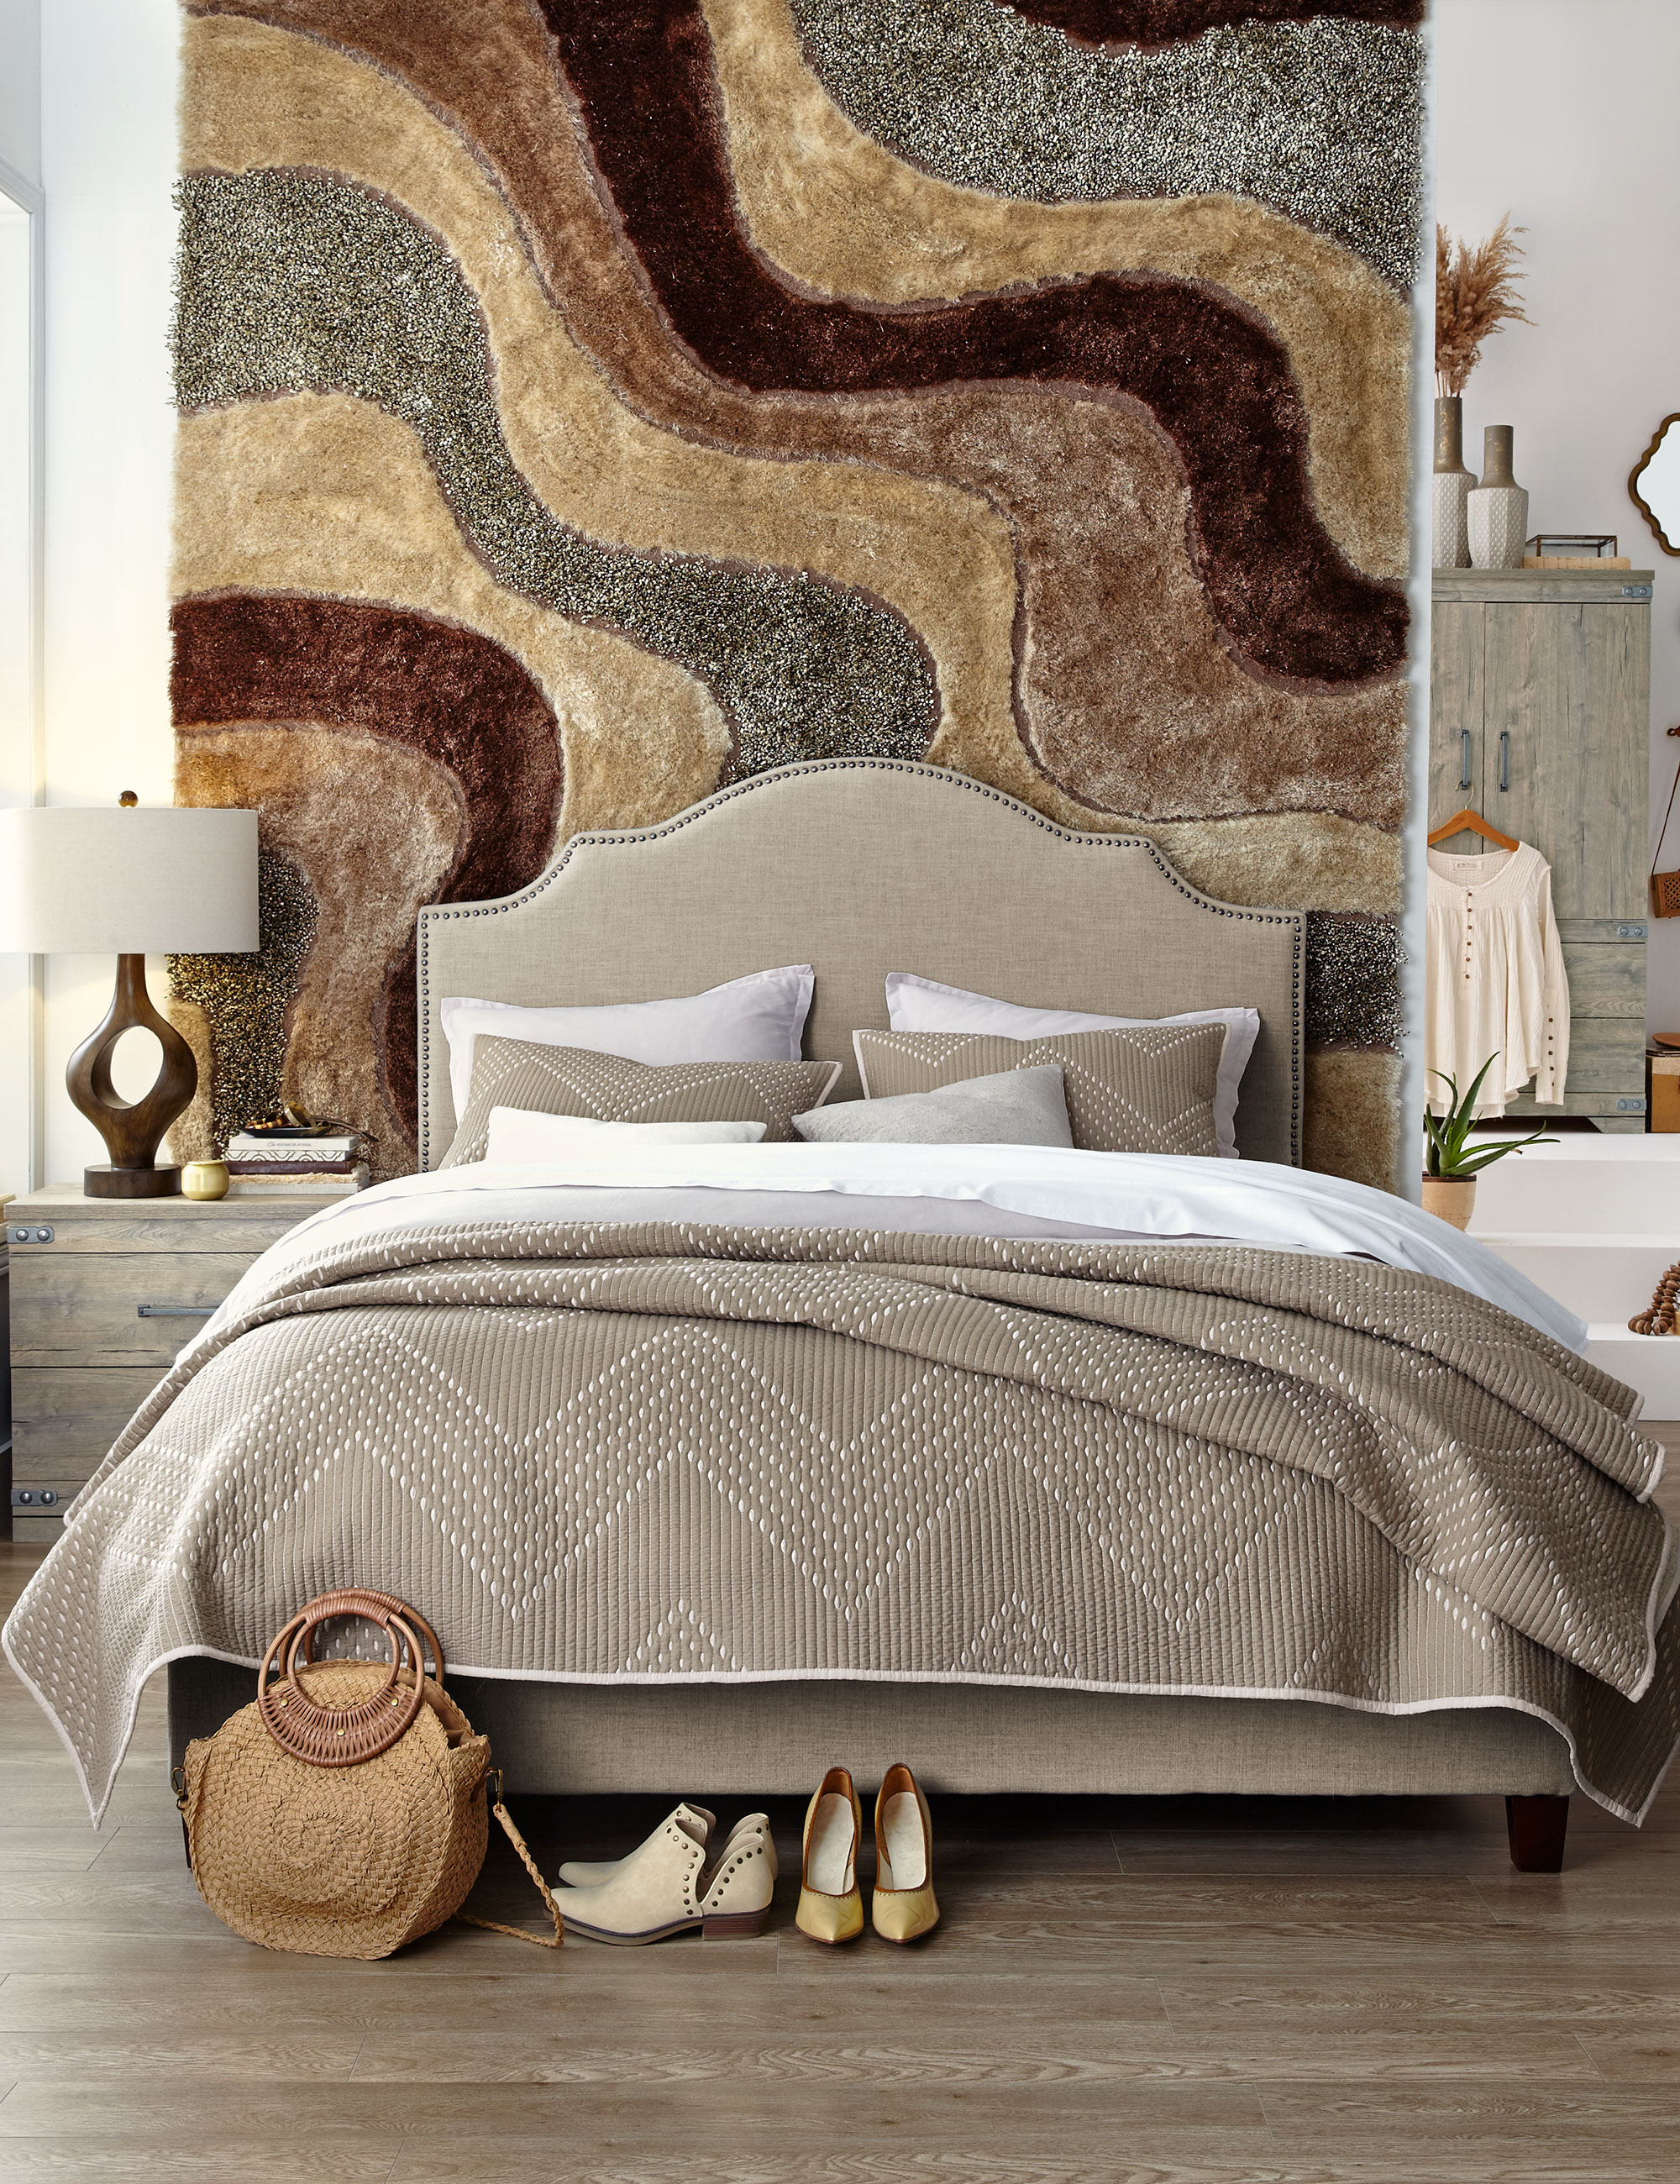 Master bedroom decorating ideas boho decor rug on a wall